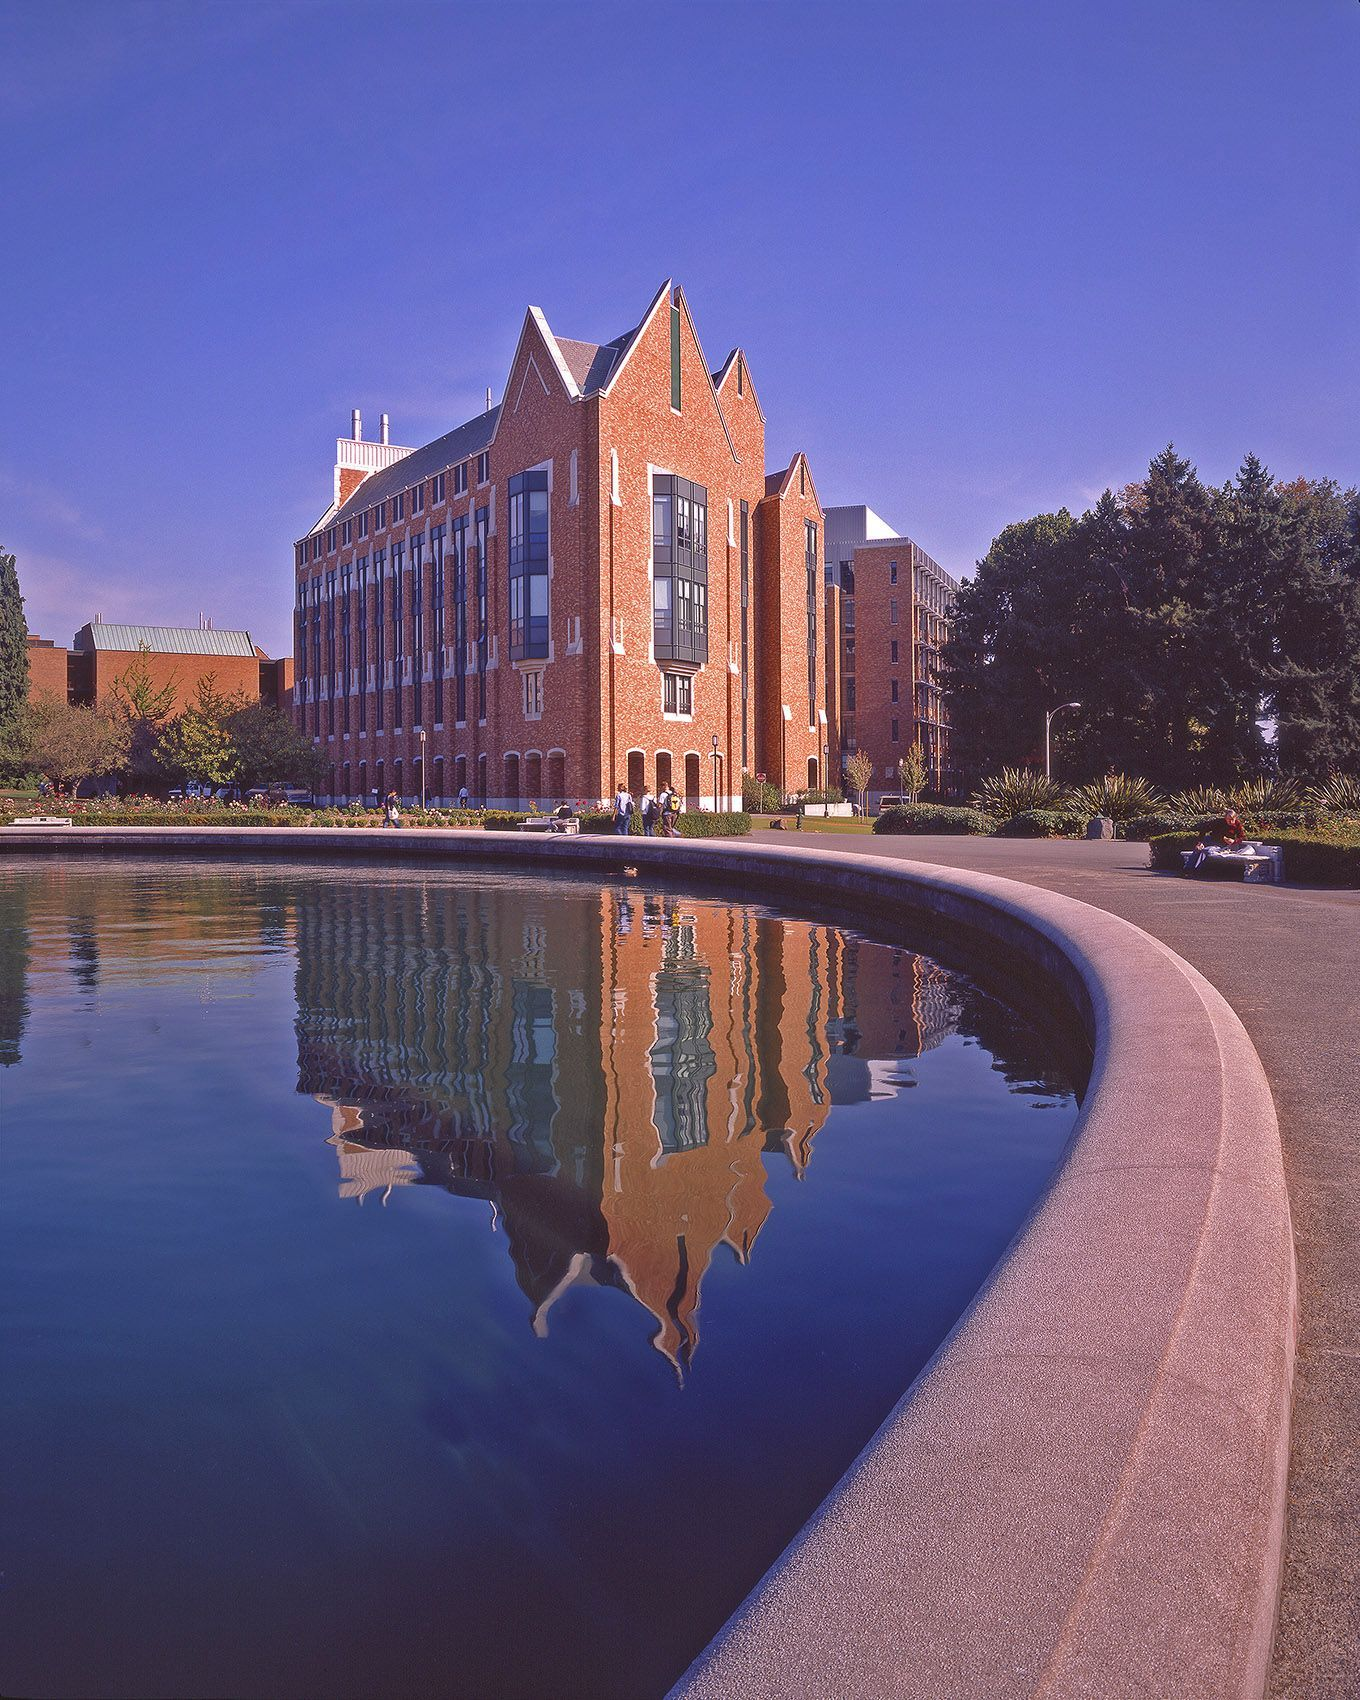 Drumheller Reflecting Pool on the Seattle campus of the University of Washington.